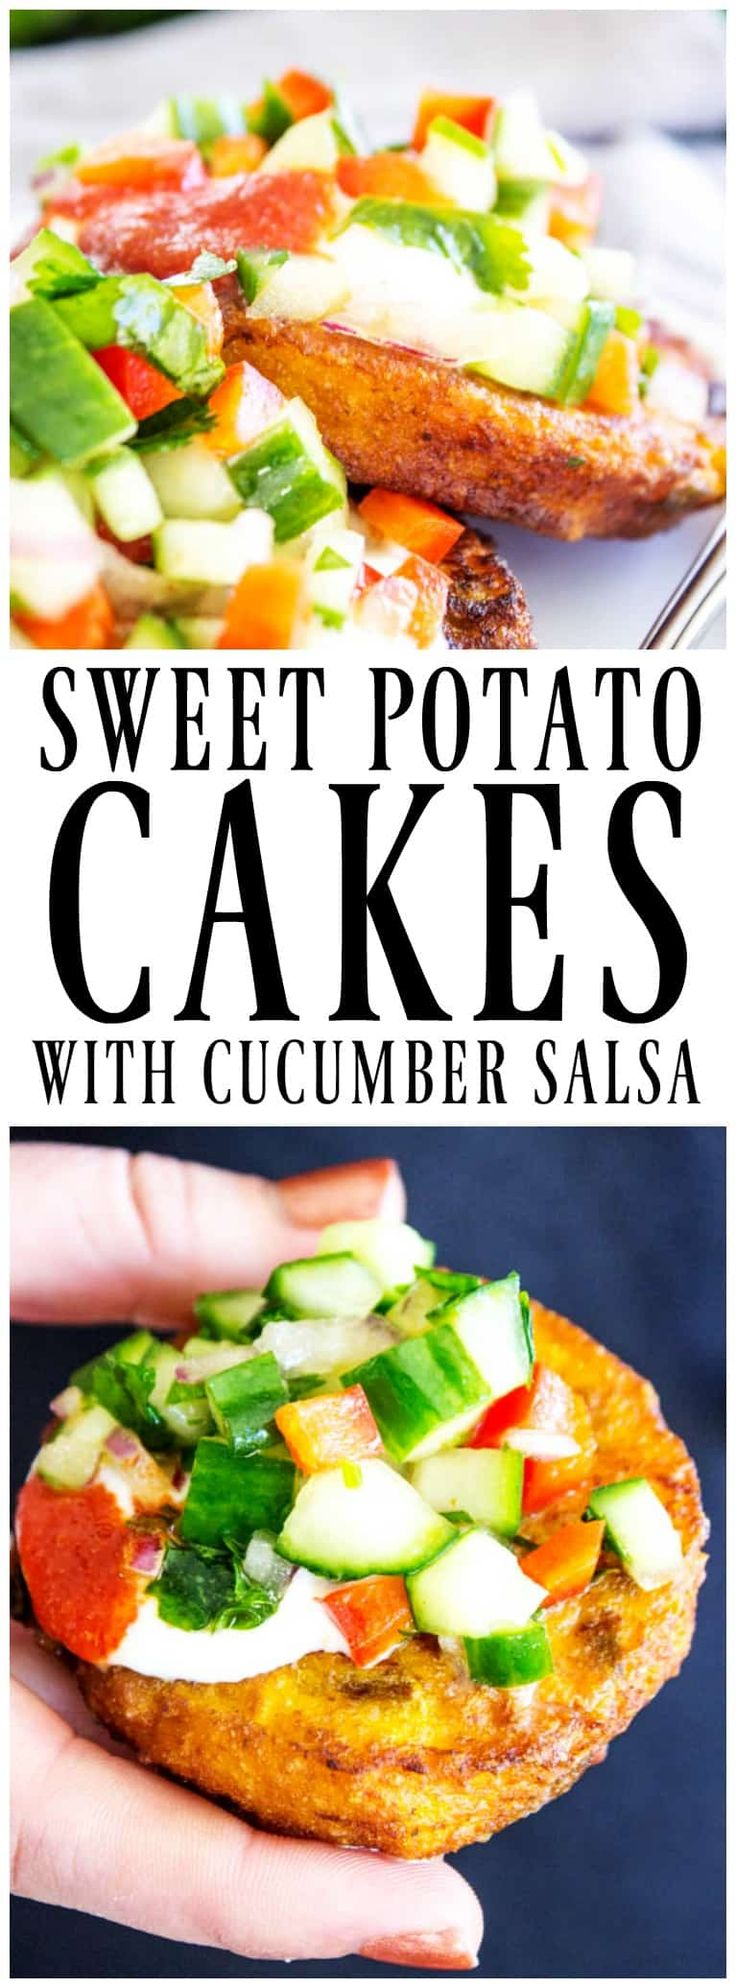 Packed with flavor, these SWEET POTATO CAKES are the perfect appetizer; they're deliciously easy and perfect for the holiday season. Garnished with crisp cucumber salsa, these mouthwatering bites will become a new party favorite